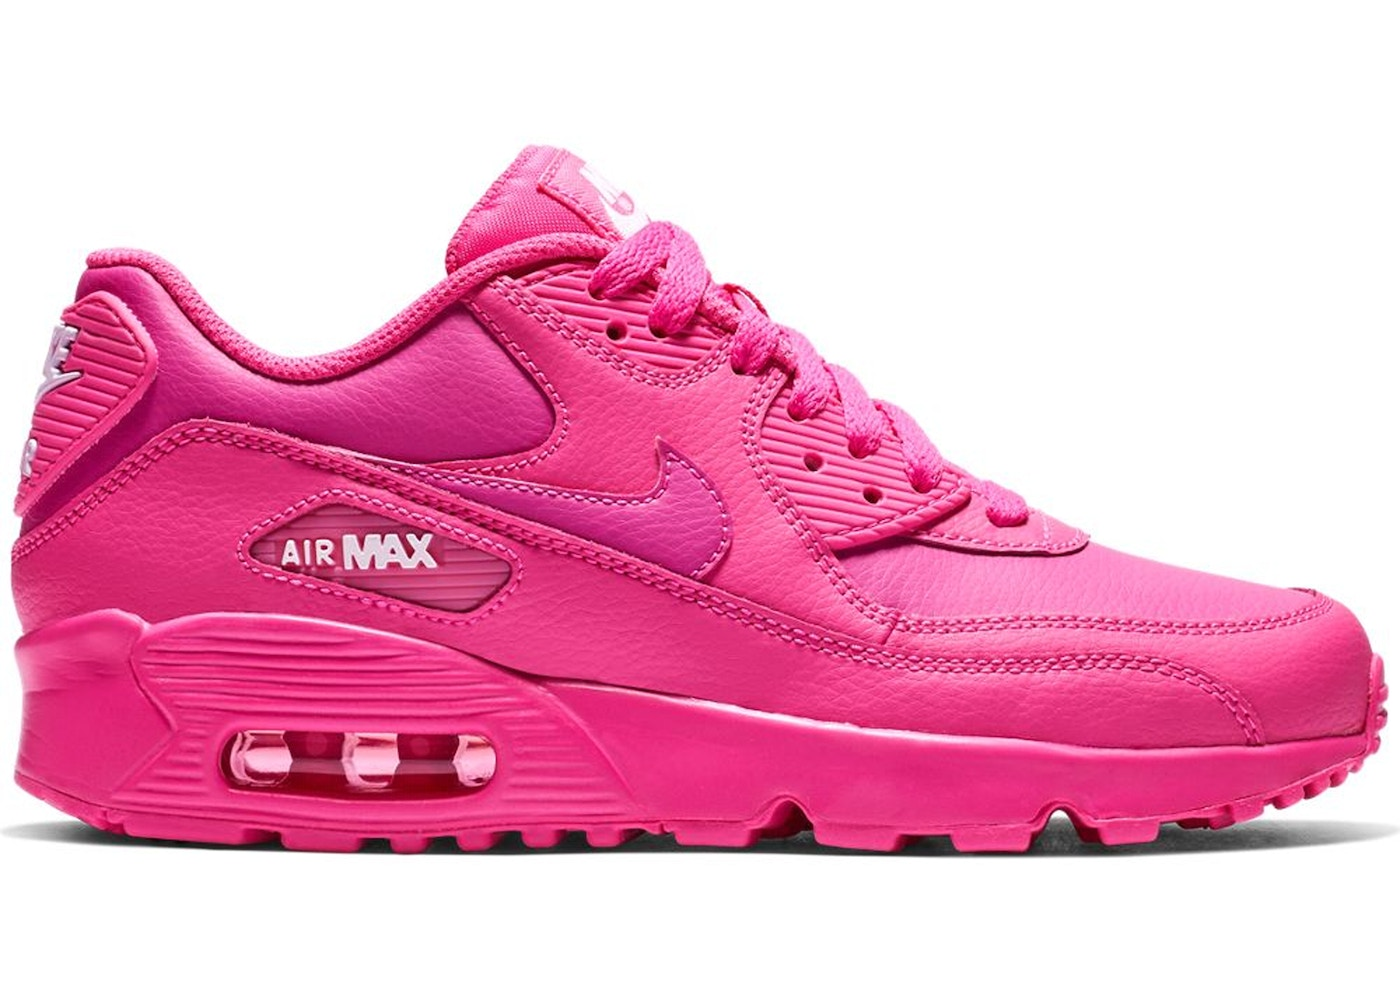 2air max fucsia